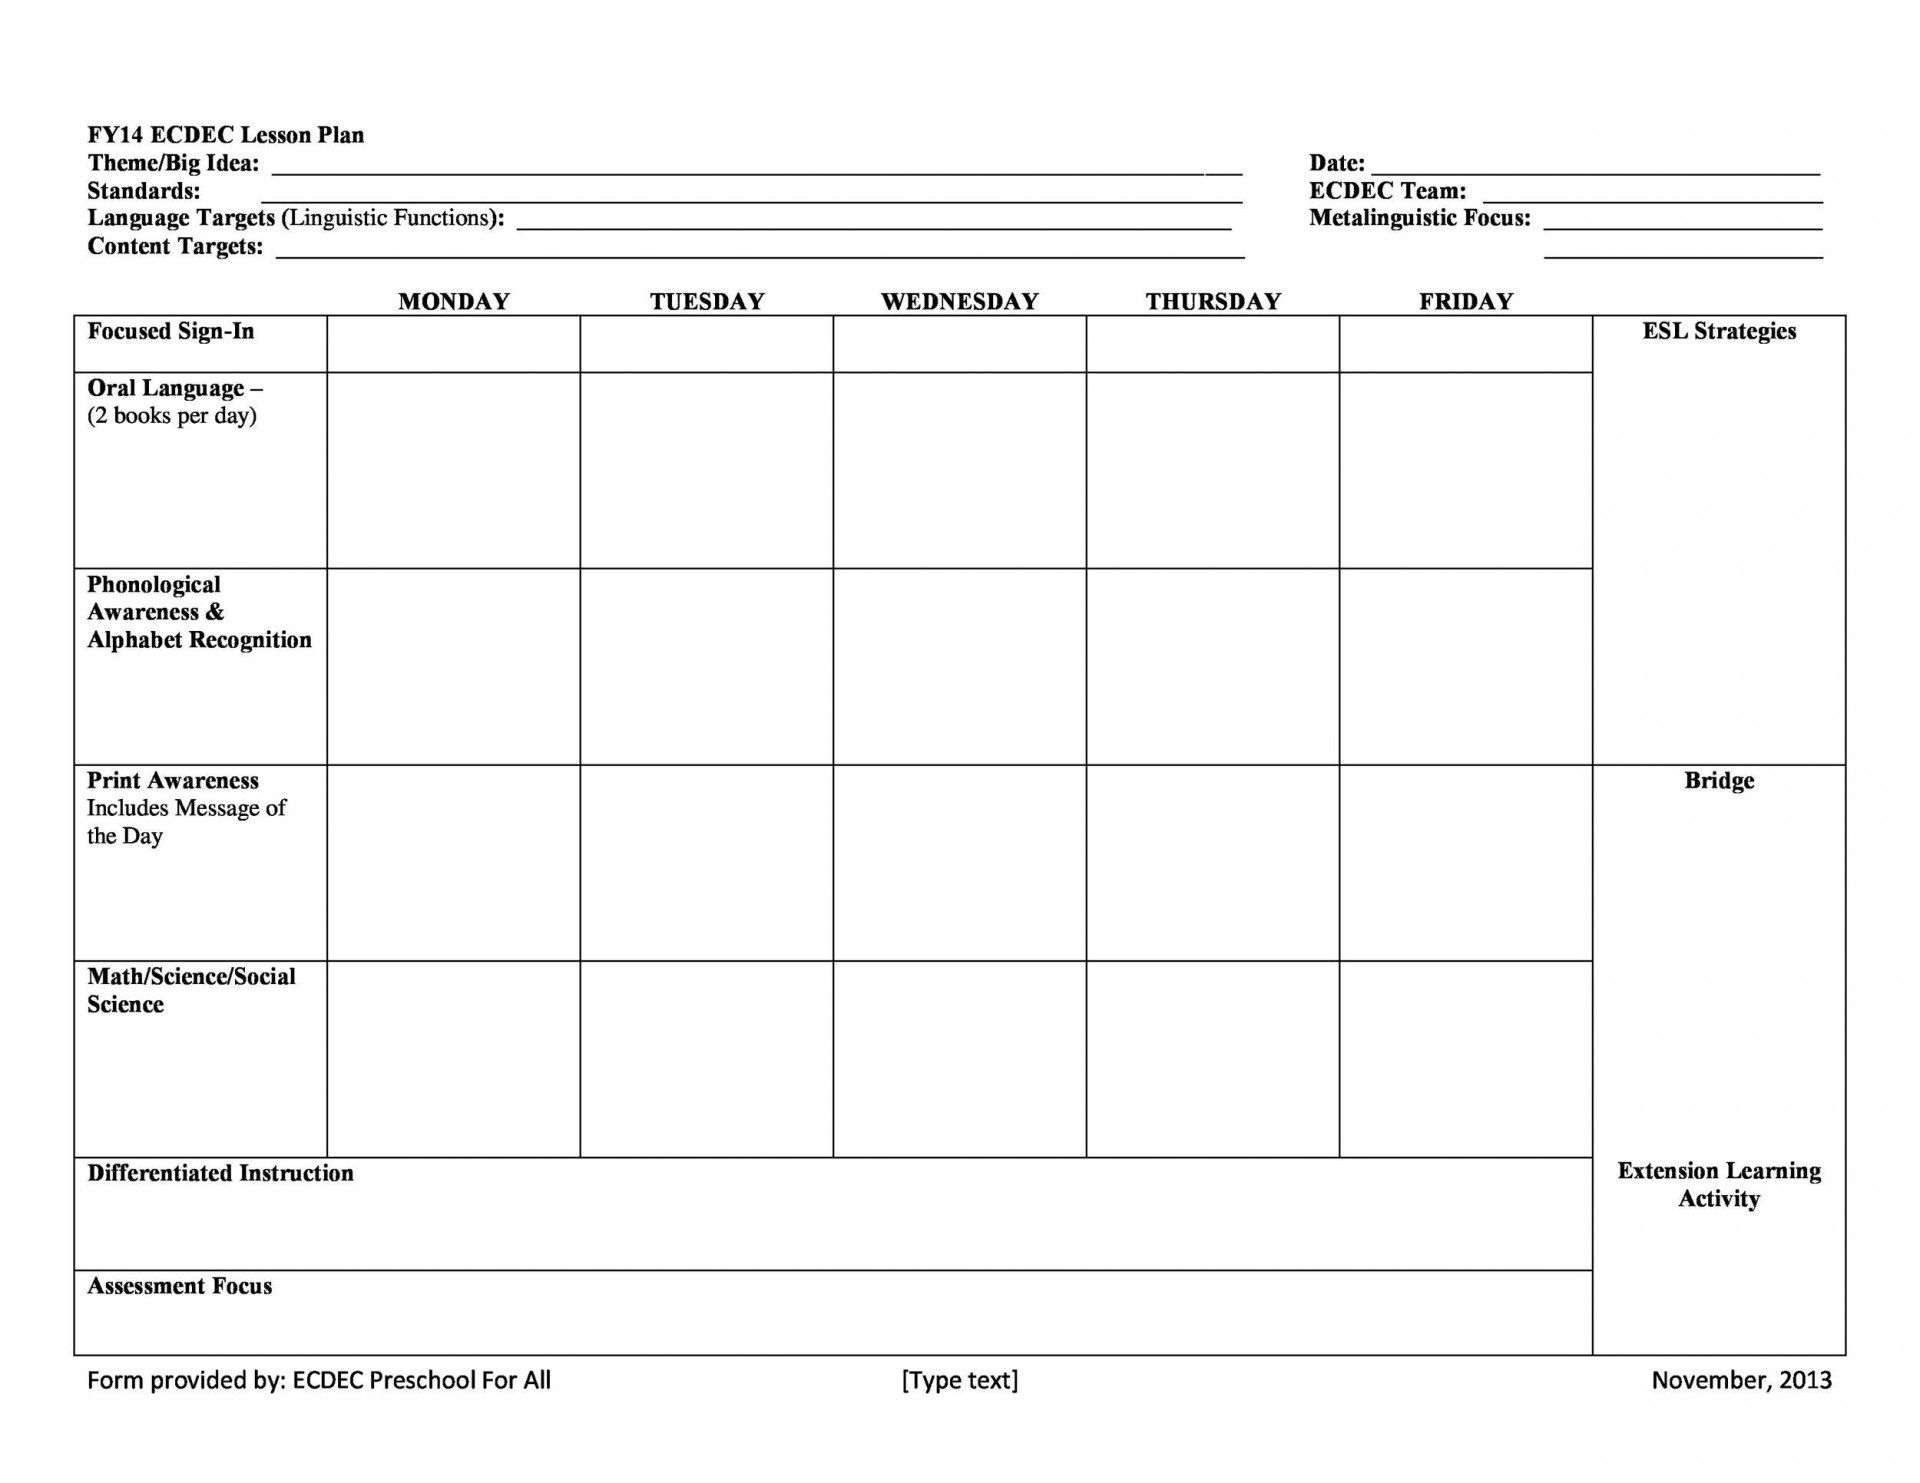 009 Excellent Lesson Plan Template Excel Free Photo Full